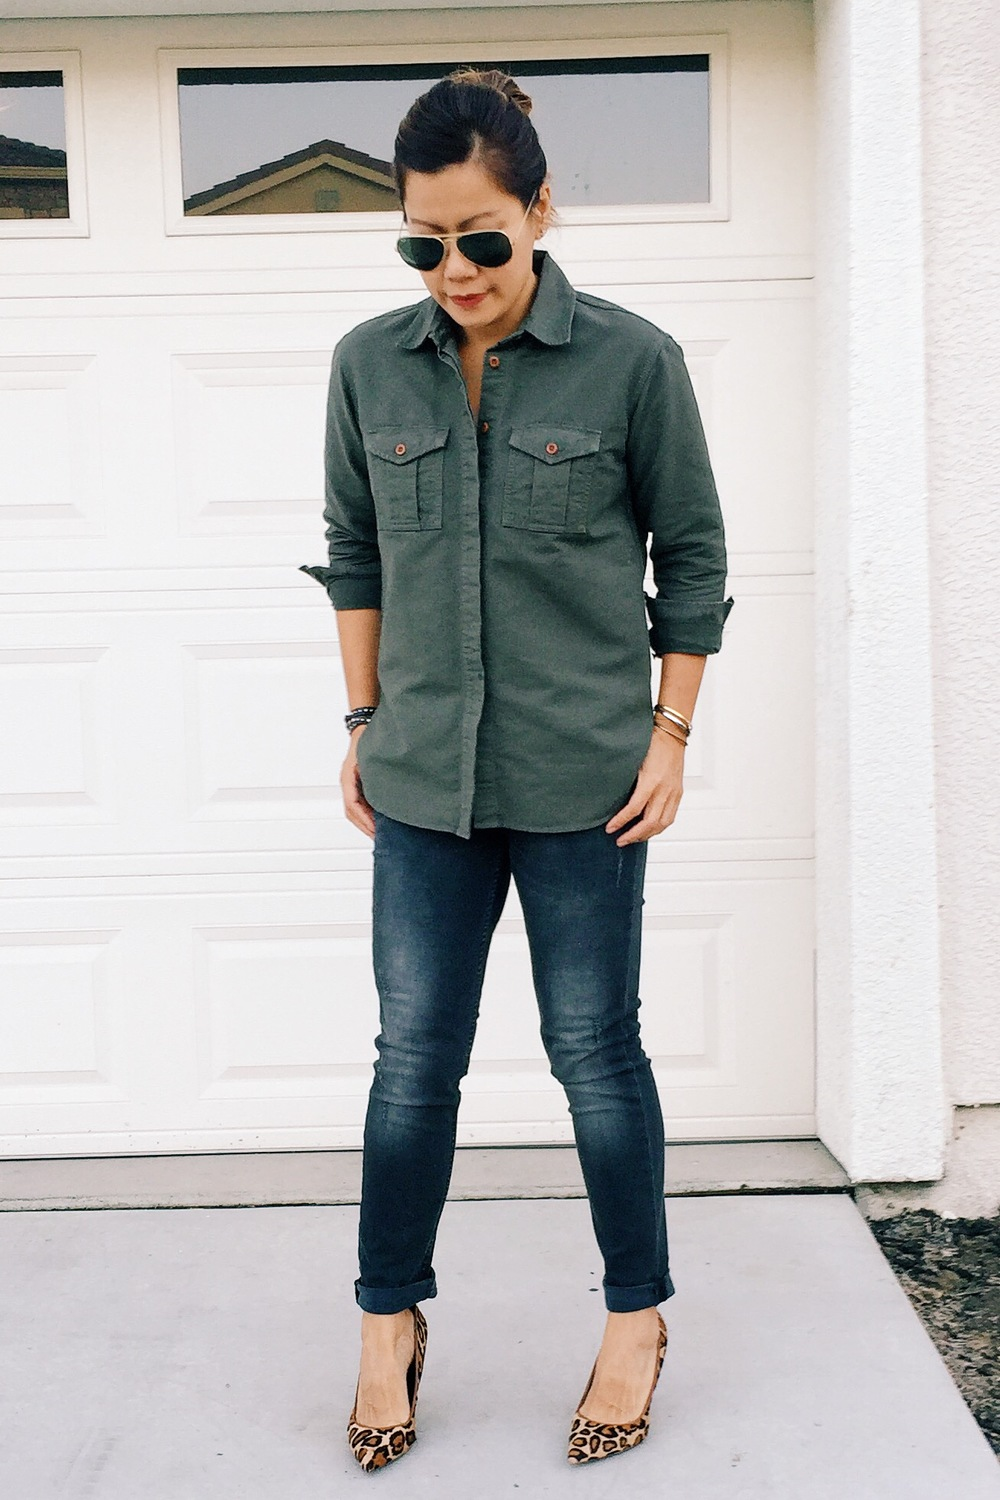 Army denim shirt from Madewell (similar here). Leopard pumps from Sam Edelman.